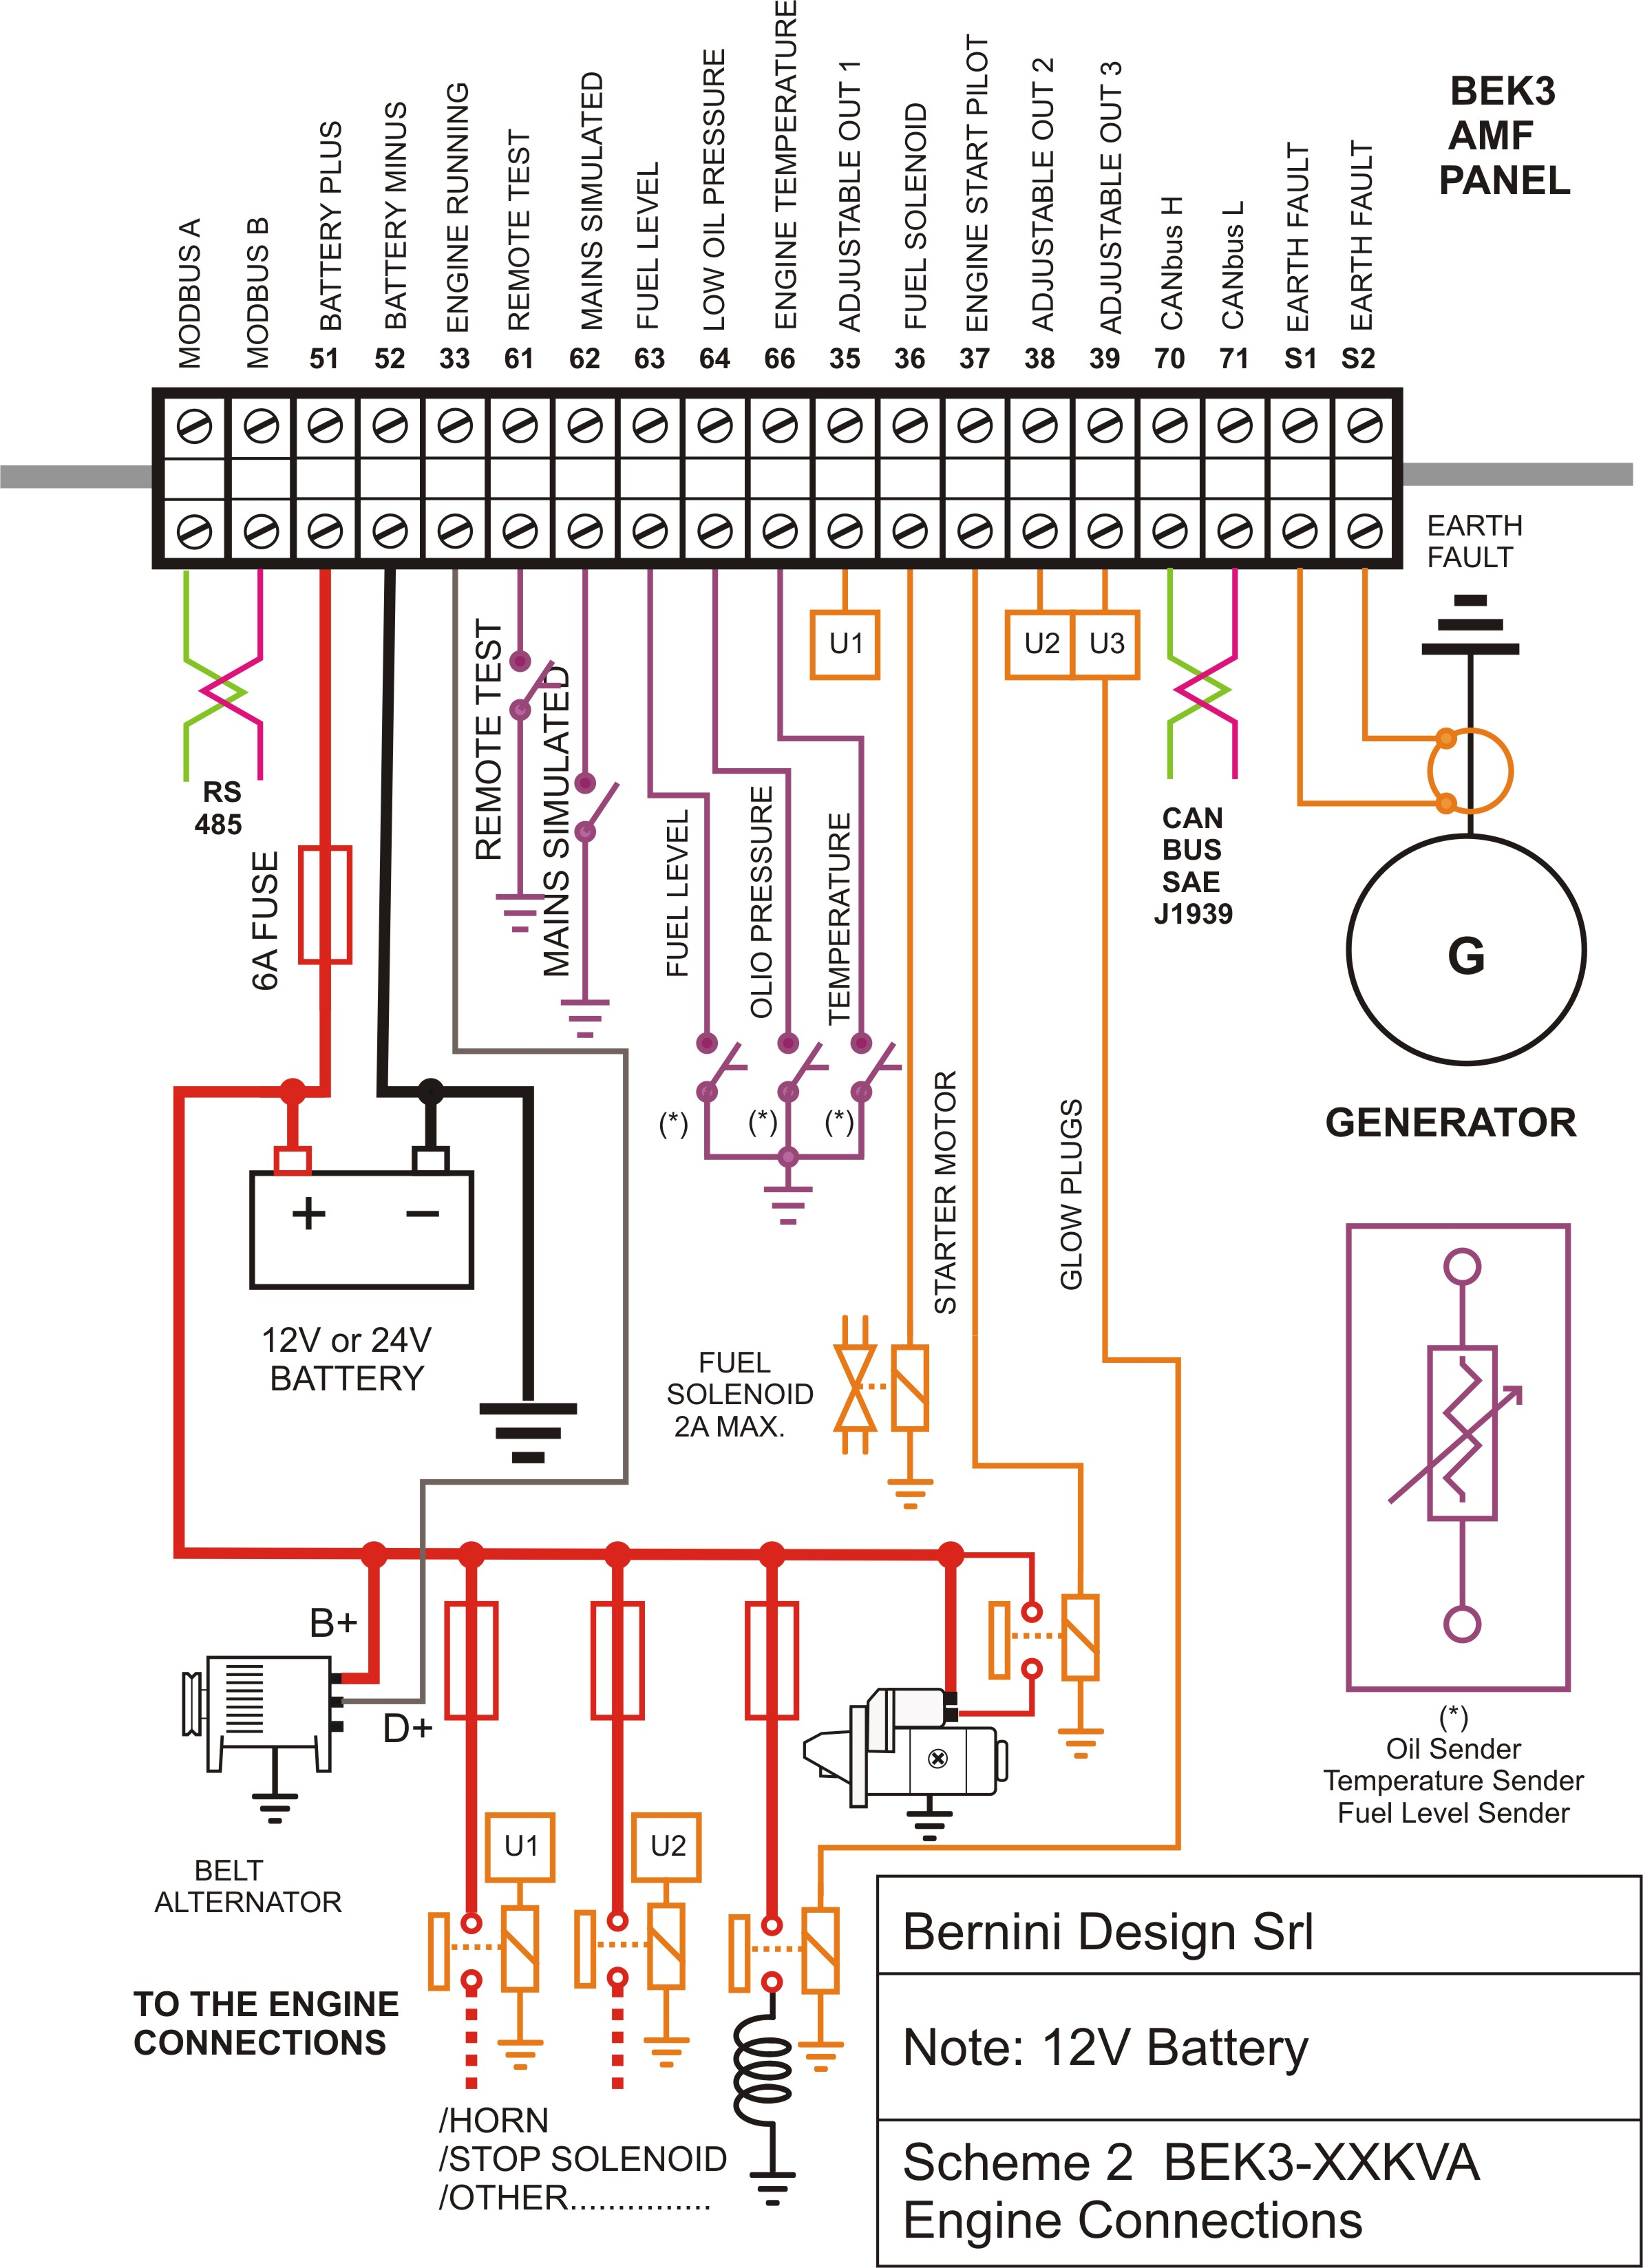 Diesel Generator Control Panel Wiring Diagram Engine Connections?resized665%2C9186ssld1 cat 247b wiring issue 100 images cat 426b wiring diagram dme  at edmiracle.co